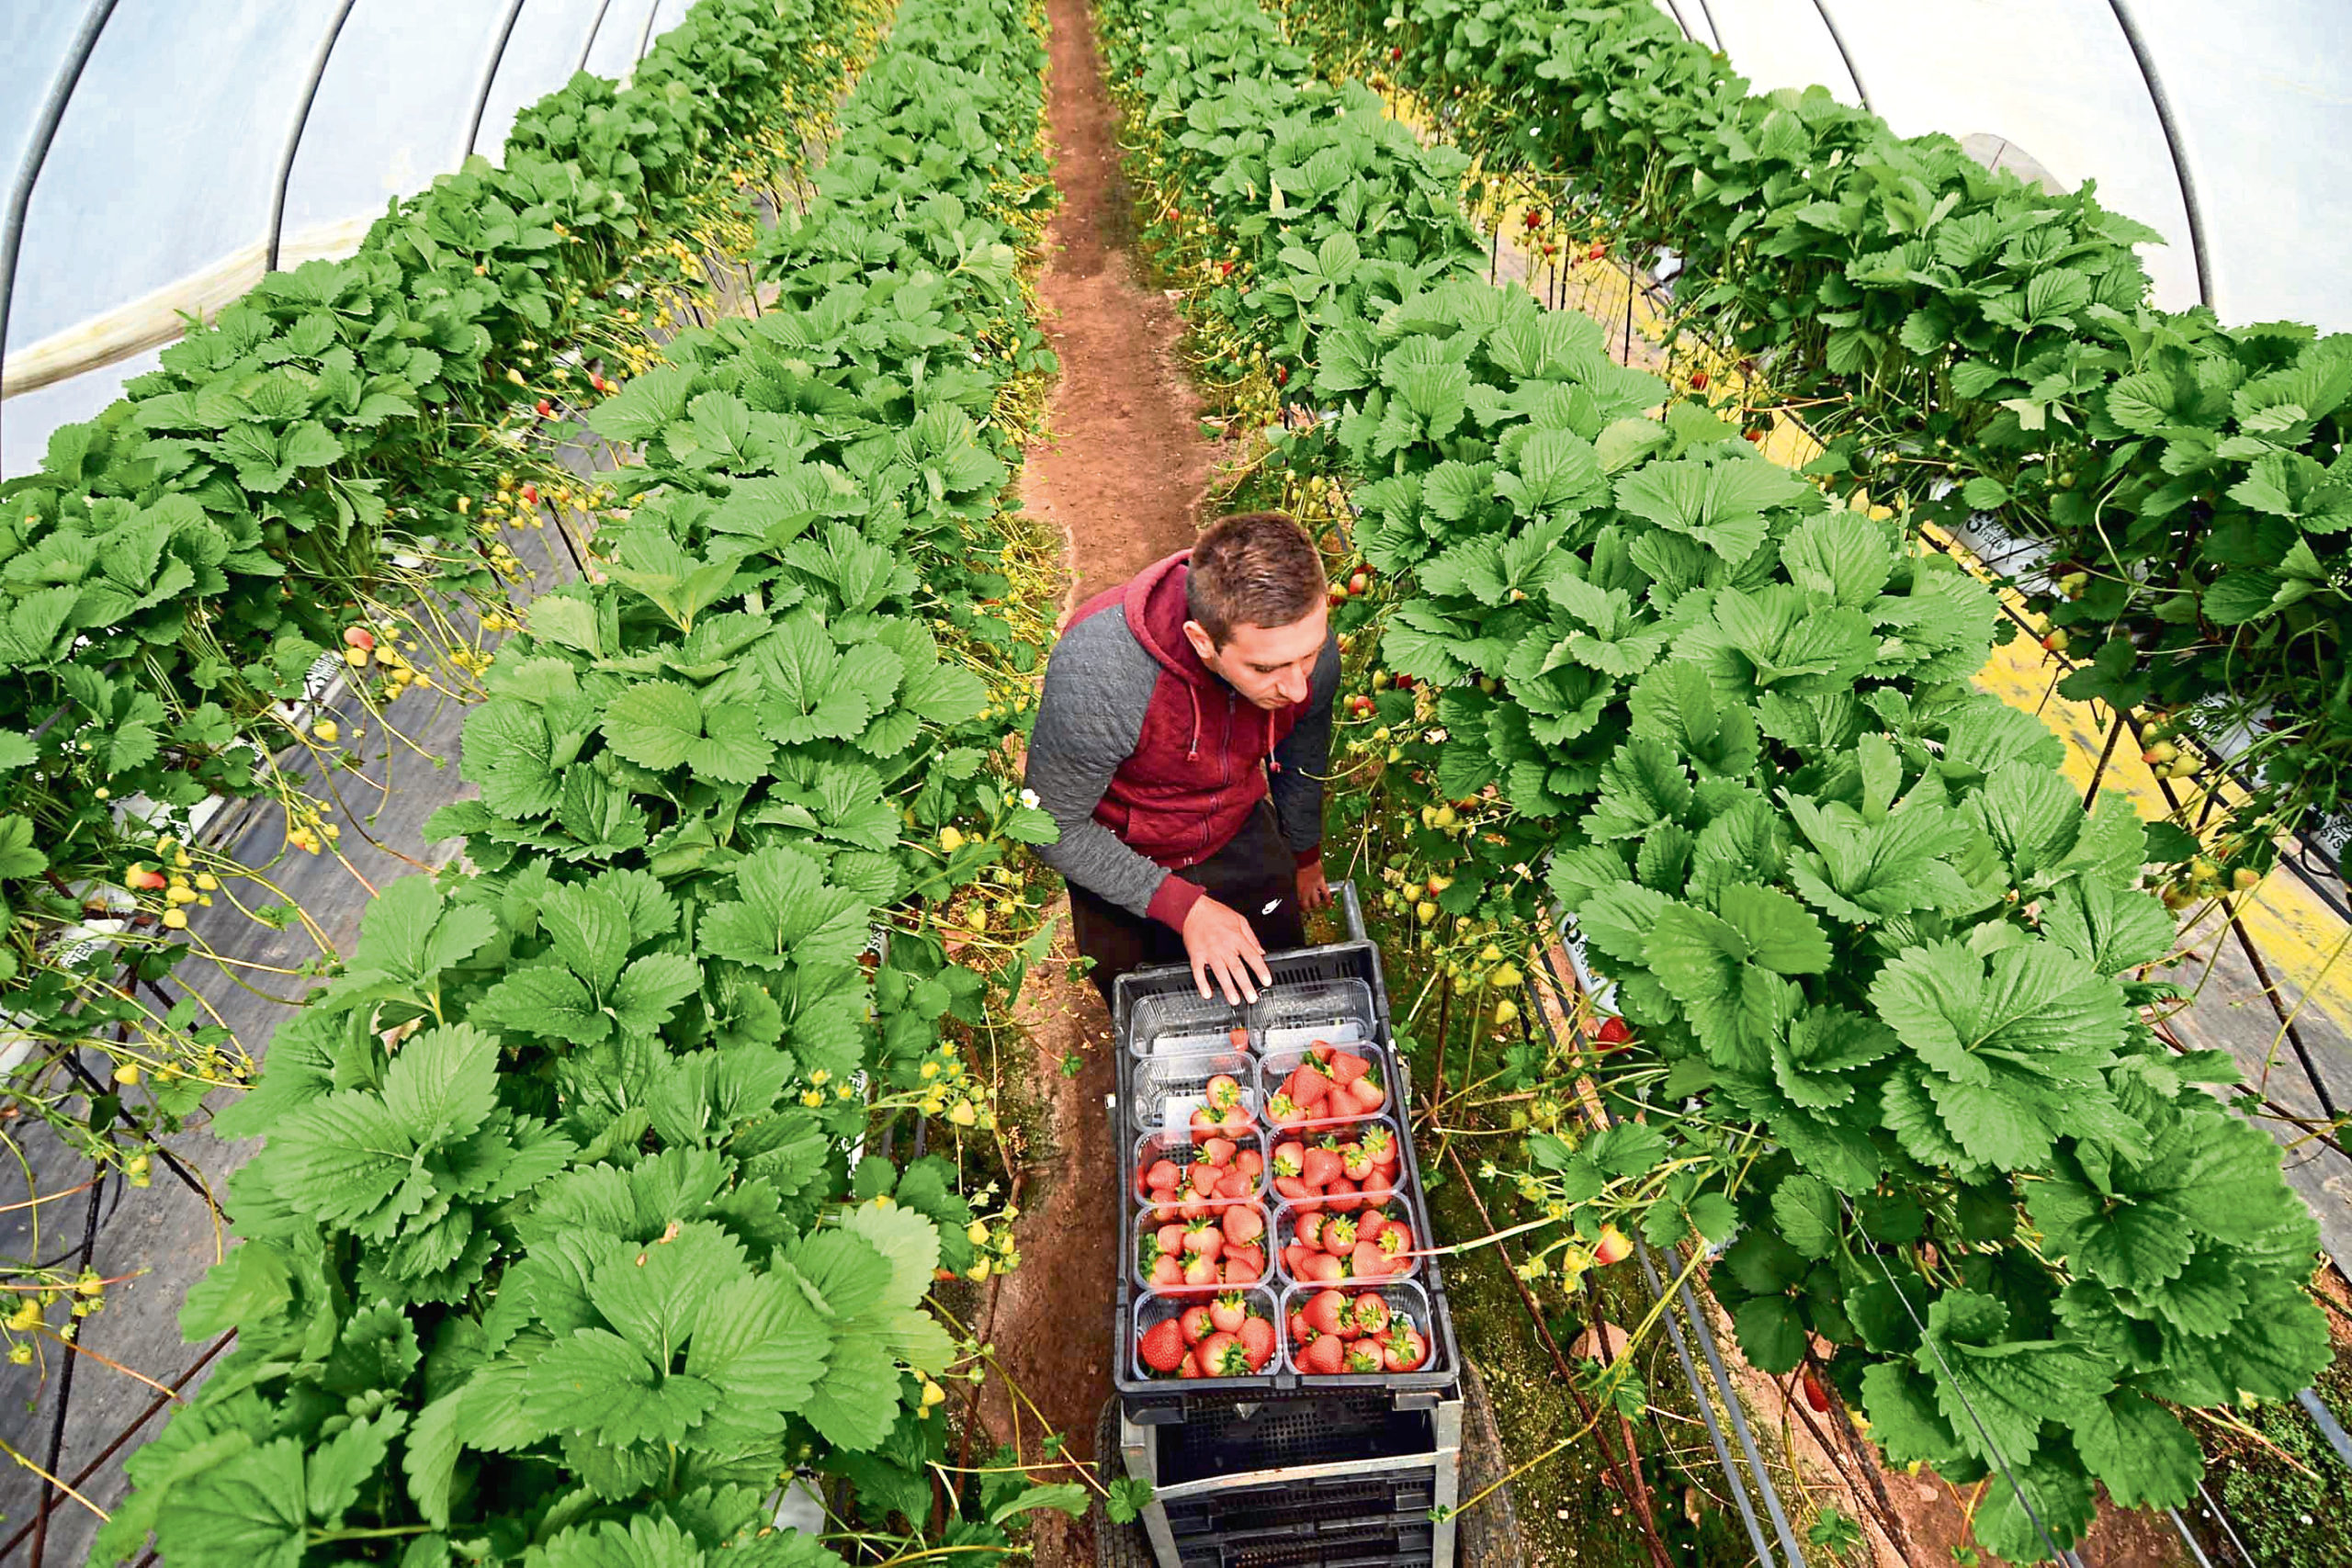 Agriculture relies on staff from EU countries, particularly seasonal workers in the soft fruit sector.